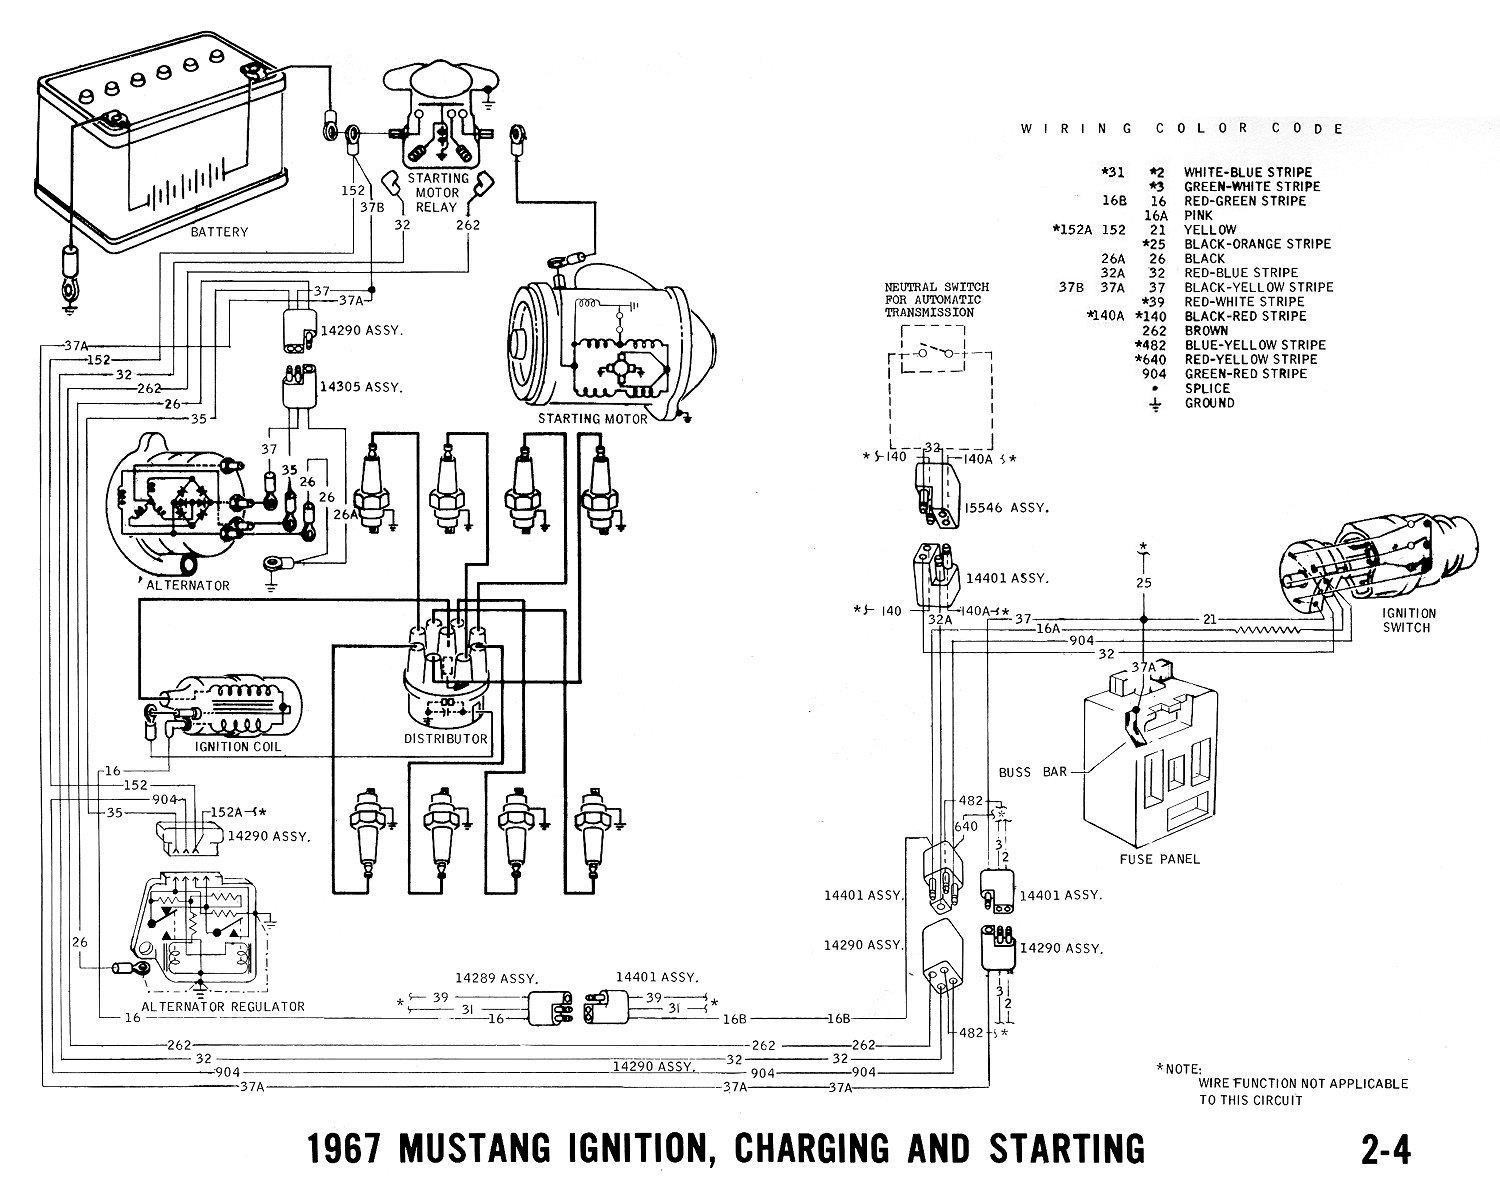 1966 ford galaxie 500 wiring diagram repair machine 1966 Ford Mustang Wiring Diagram